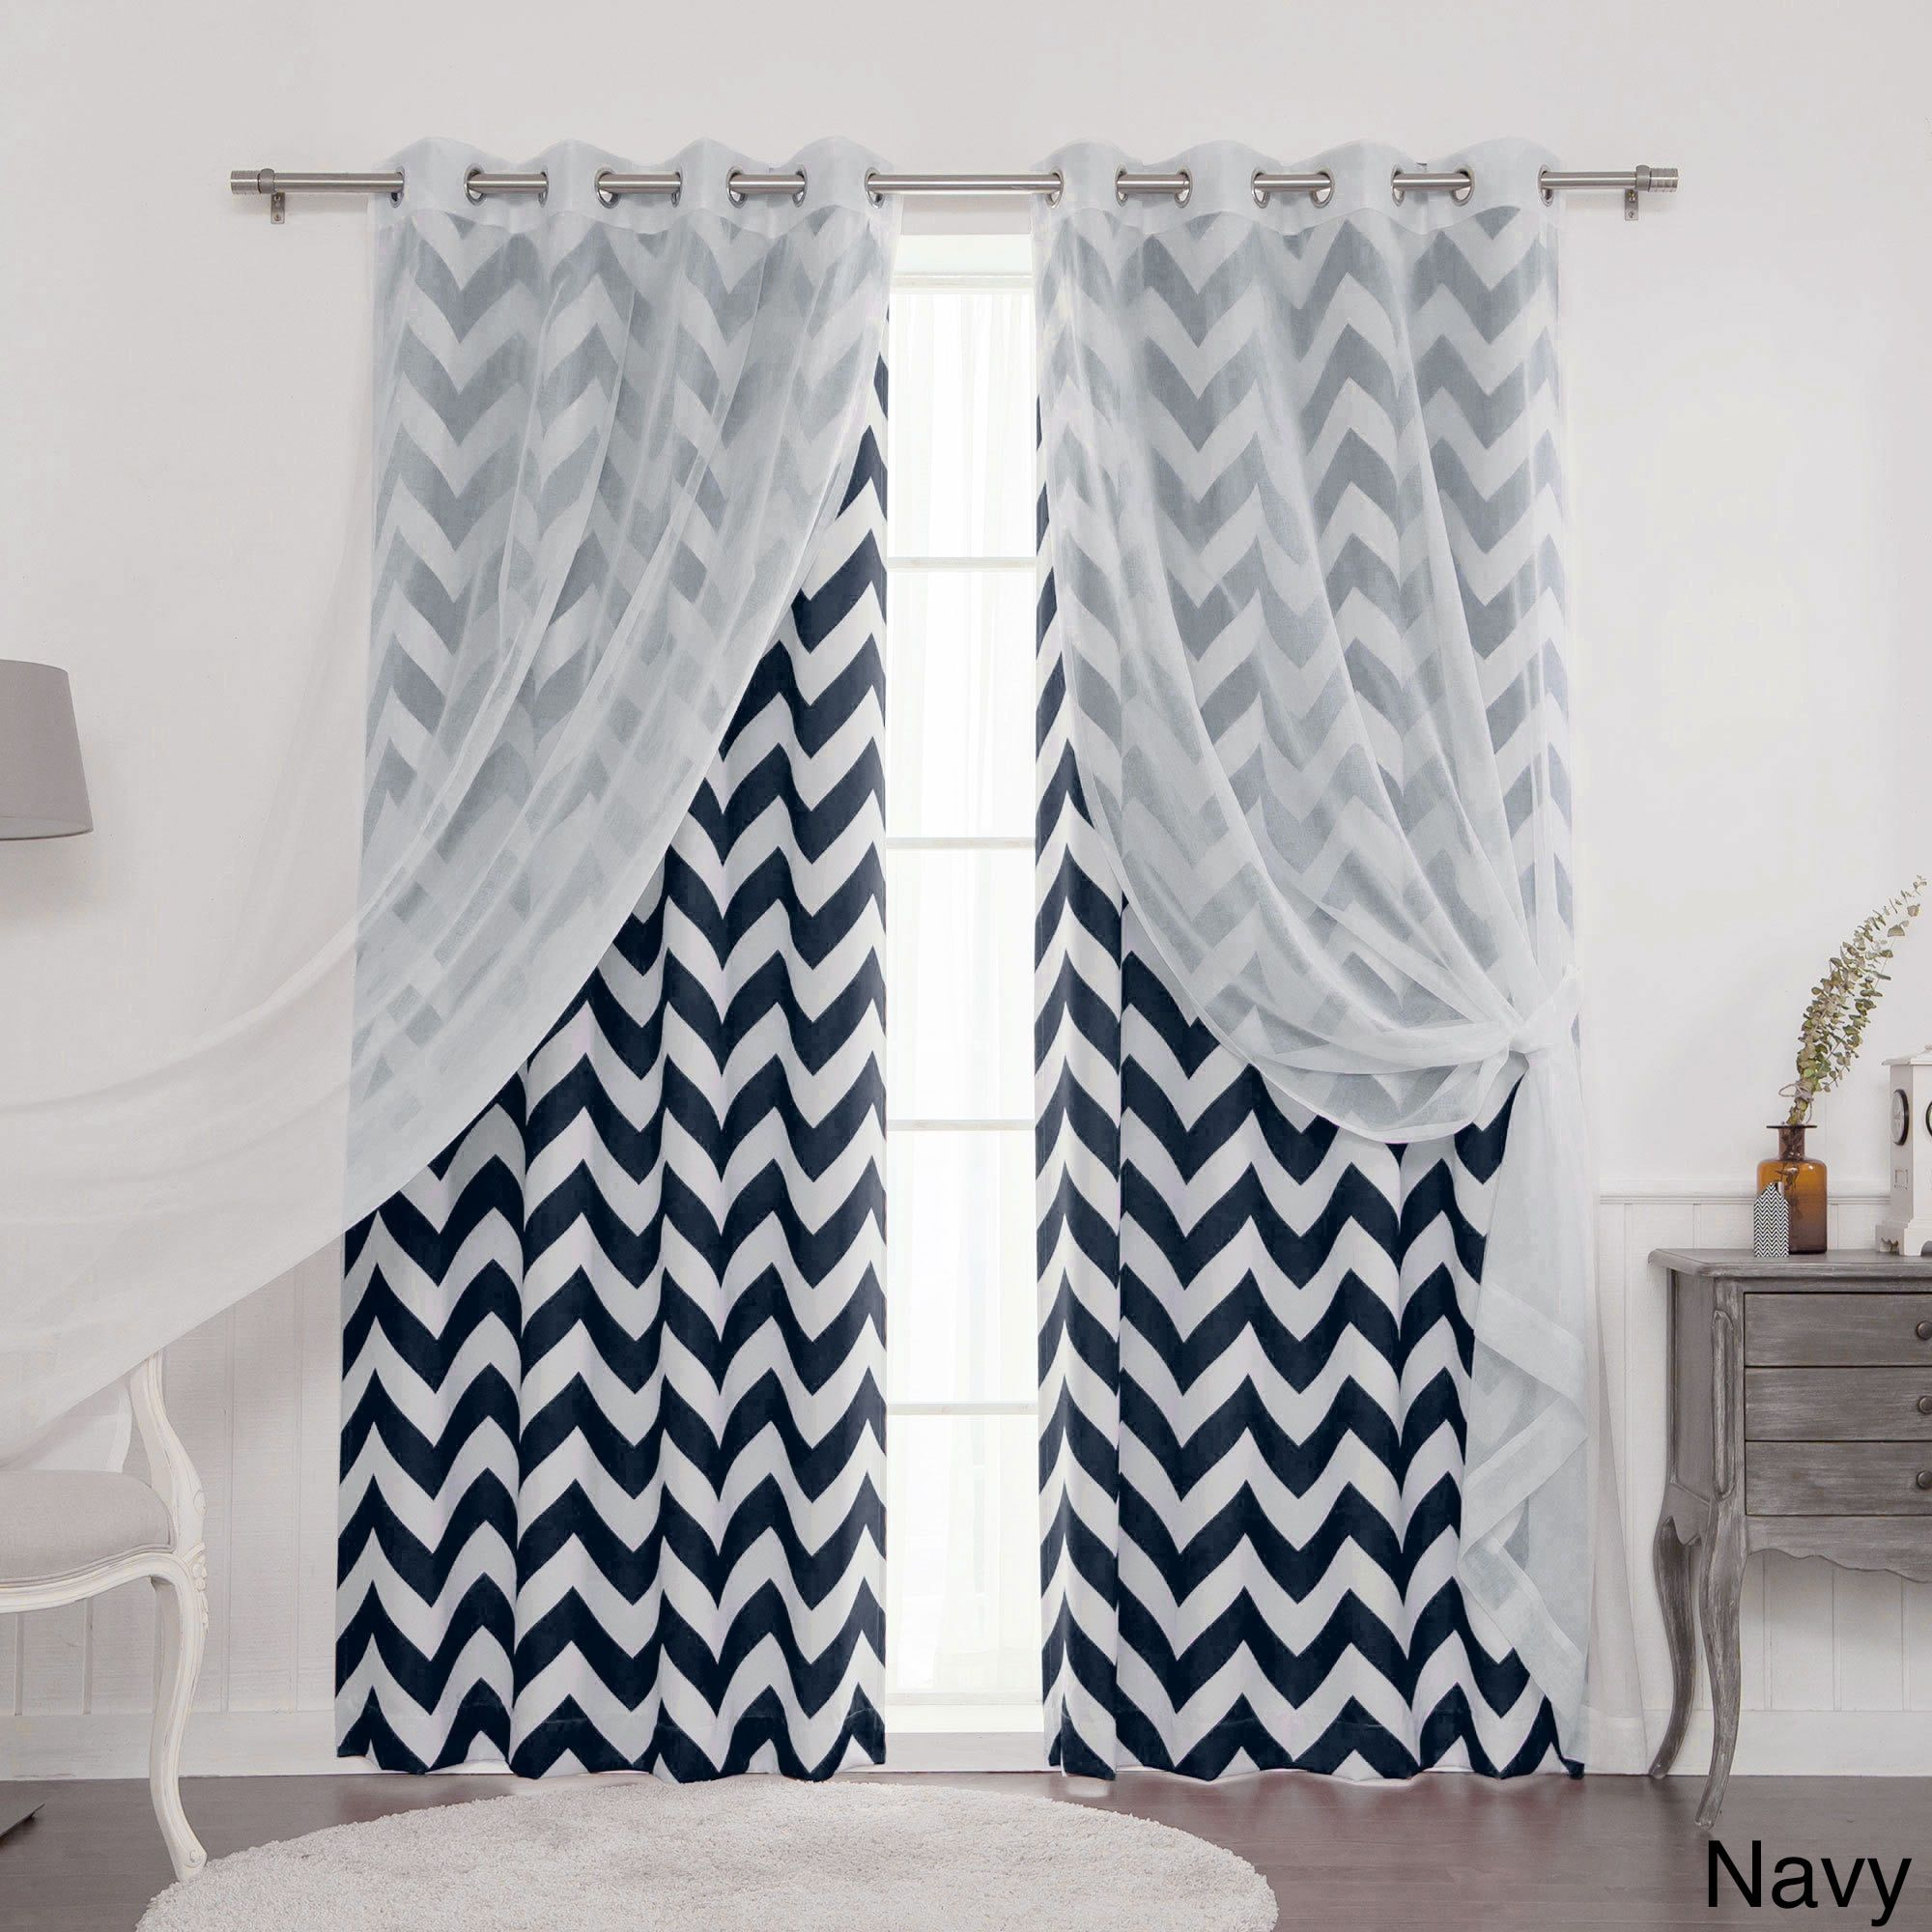 Aurora Home Mix Match Muji Sheer Chevron 4 Piece Curtain Panel Set 52 W X 84 L Home Decor Outlet Curtains Home Decor